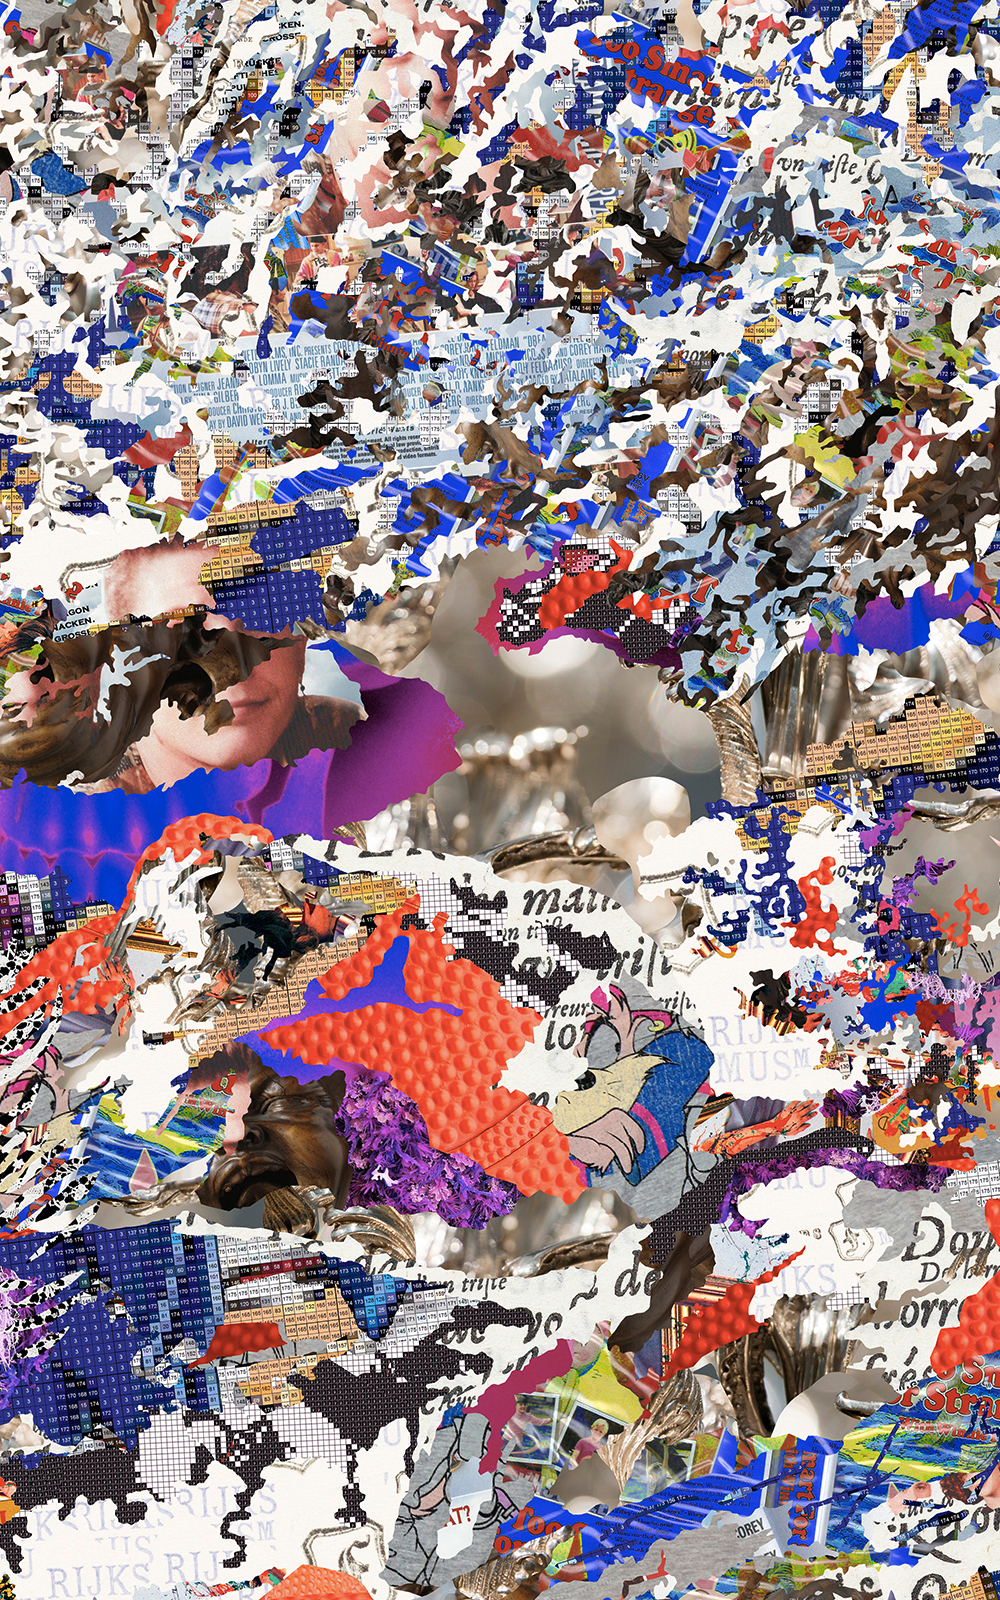 Case Simmons, Simmons & Burke, Blue JuJu, Dutchmasters, Kohn Gallery, Pigment Print, Digital Collage, Digital Art, Photoshop Collage, Contemporary Collage, Photoshop Actions, Case Simmons Art, Collage Fine Art, Digital Landscape